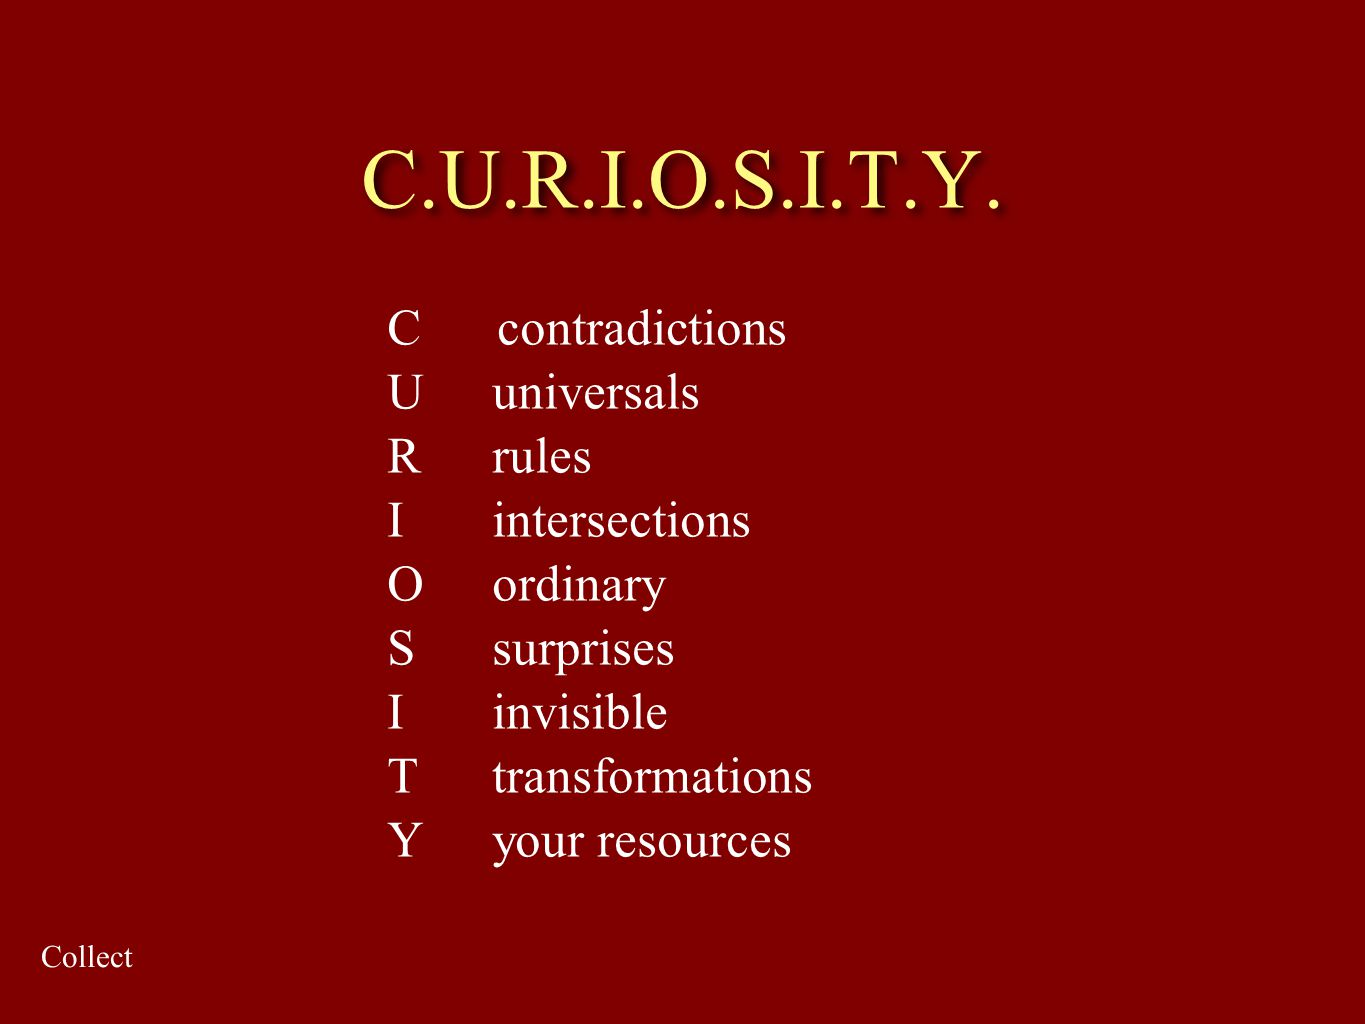 C.U.R.I.O.S.I.T.Y. C contradictions U universals R rules Iintersections Oordinary S surprises I invisible Ttransformations Y your resources Collect